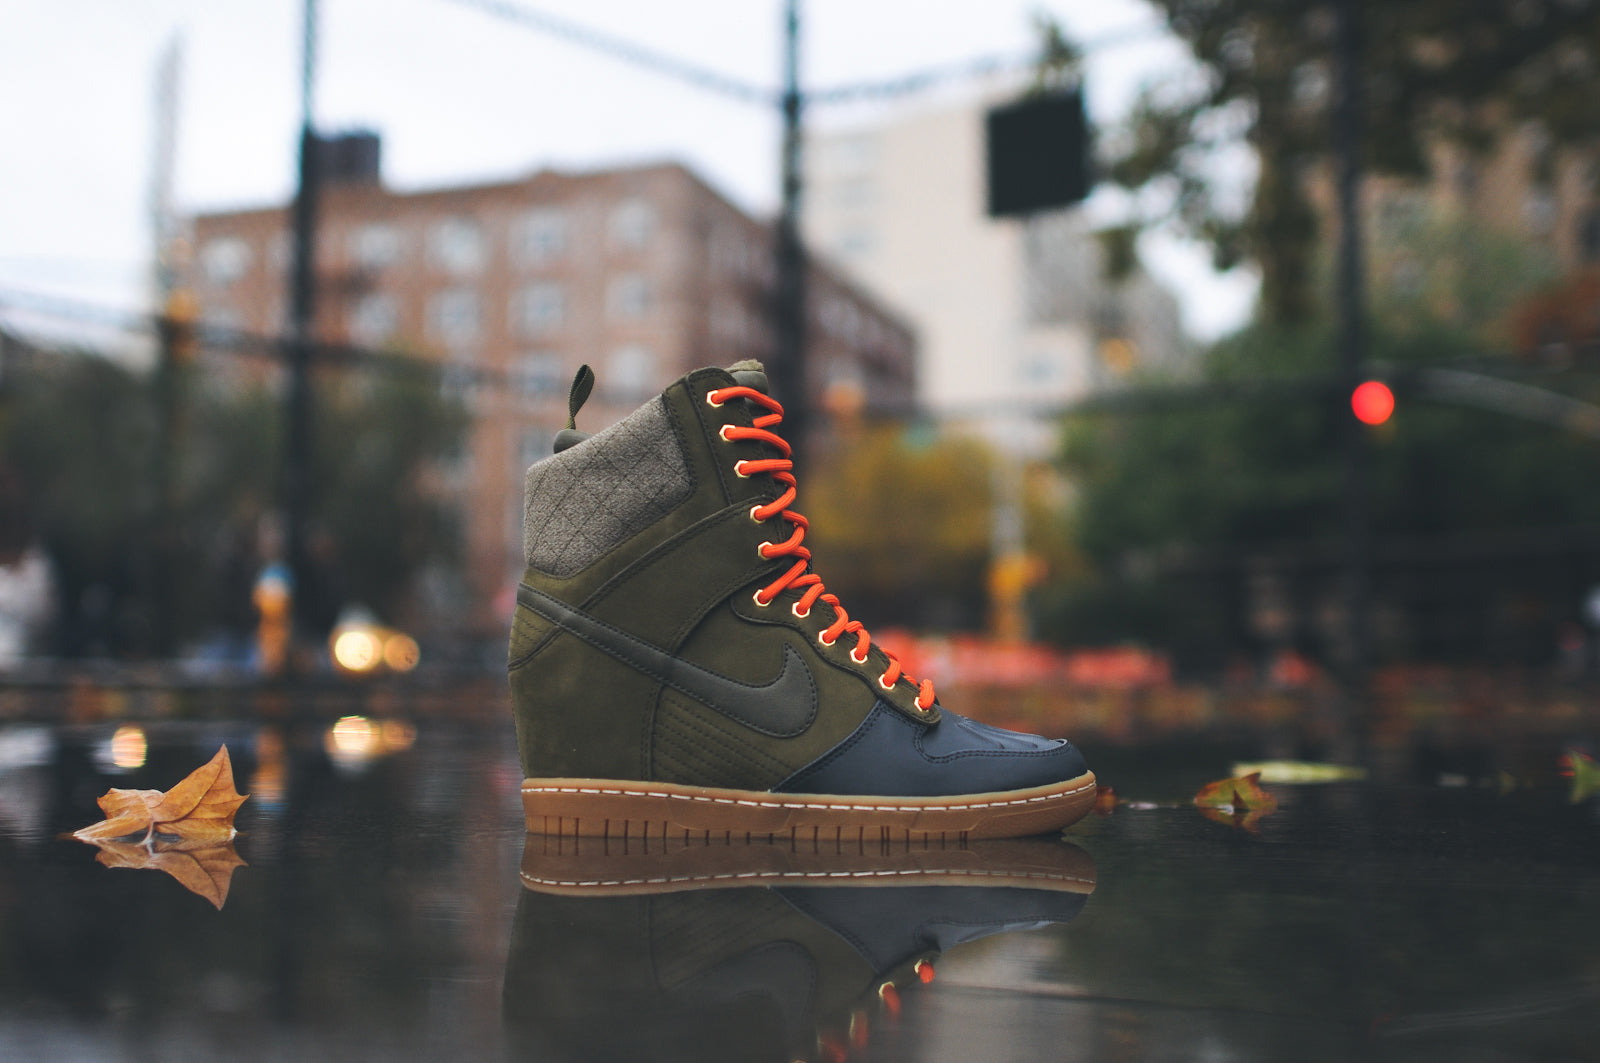 quality design 33da1 b140f NIKE WMNS DUNK SKY HI SNEAKERBOOT 2.0 - DARK LODEN/BLACK @ KITH NYC ...